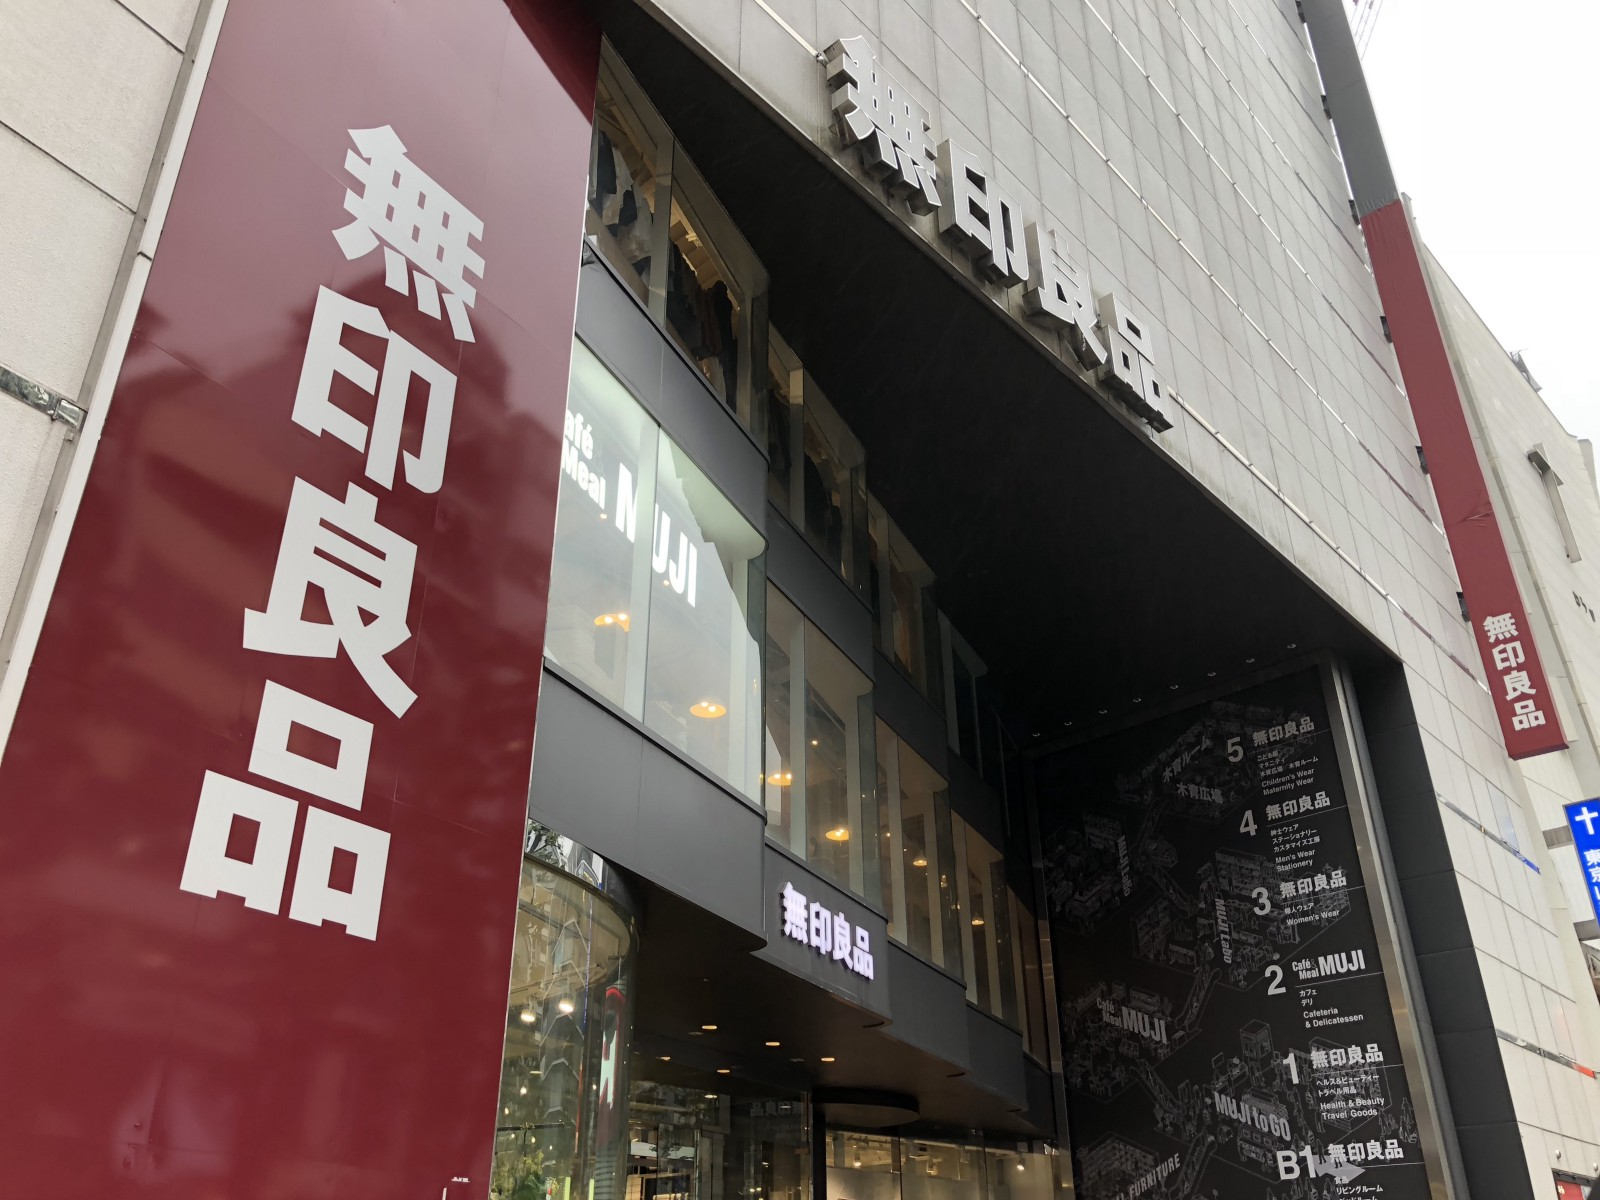 One of the most popular Japanese shops, MUJI's Shibuya branch